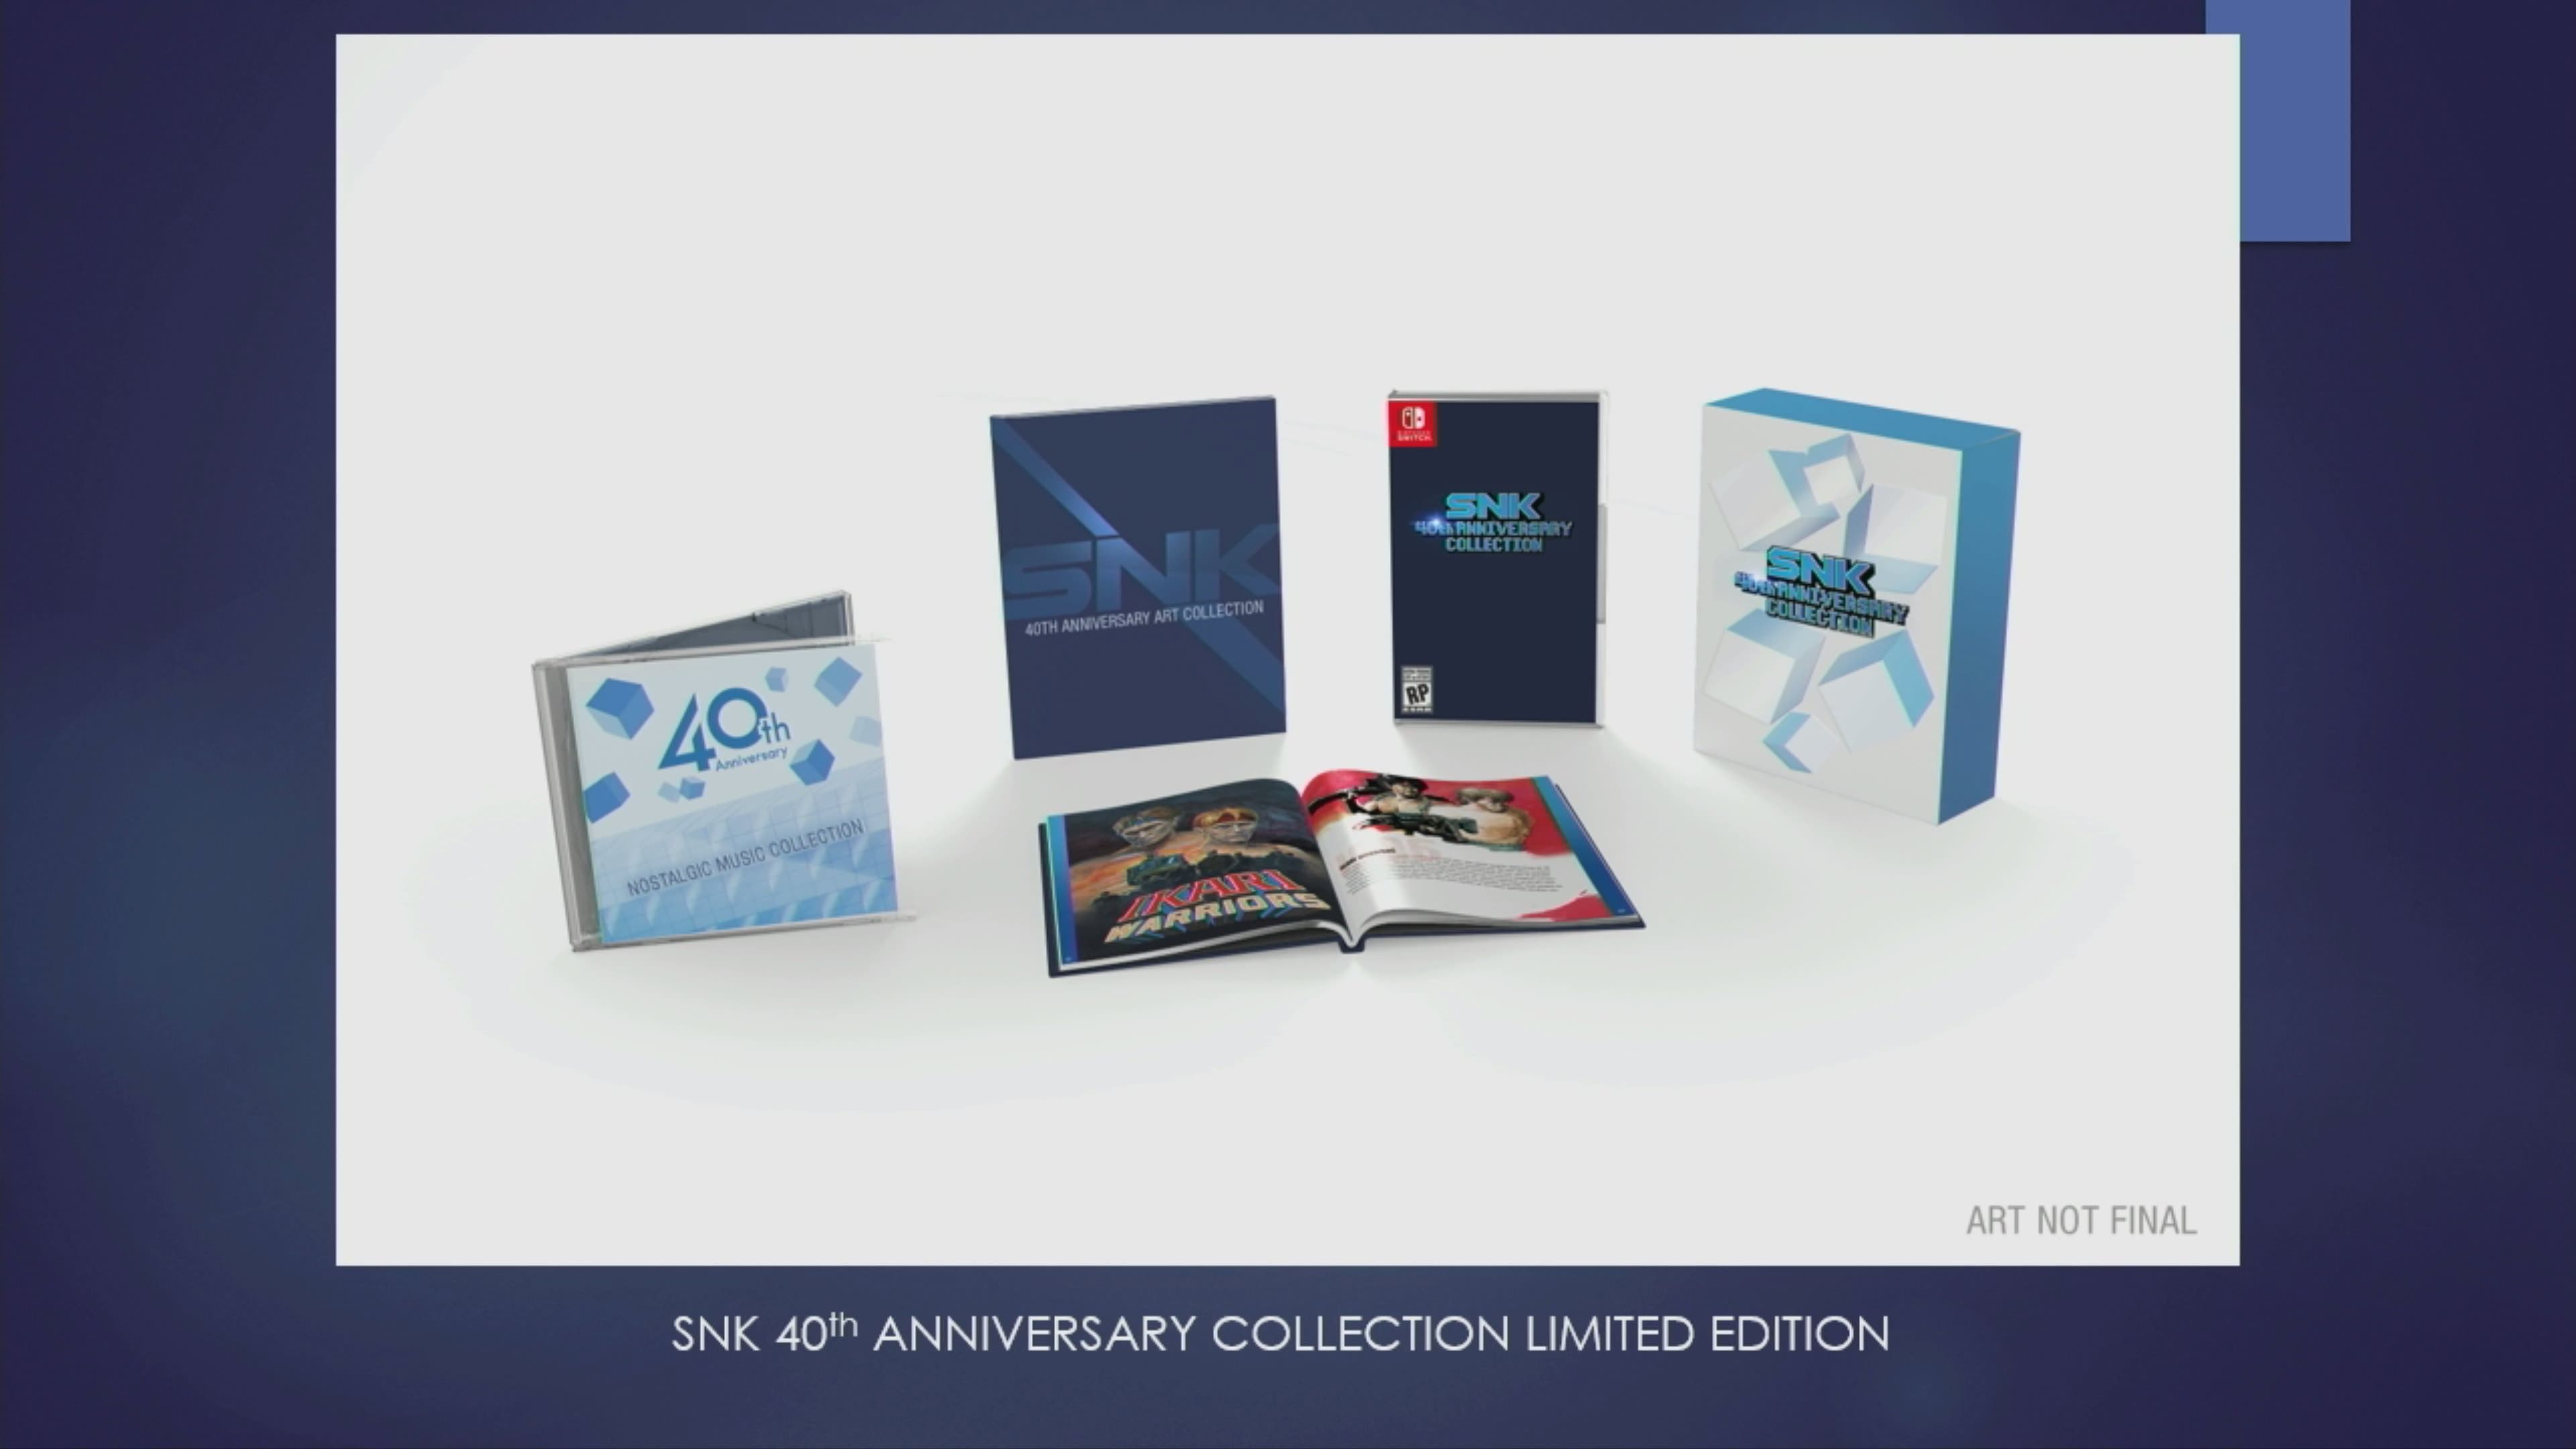 [Act.] Anunciado SNK 40th Anniversary Collection, que llegará a Switch en otoño